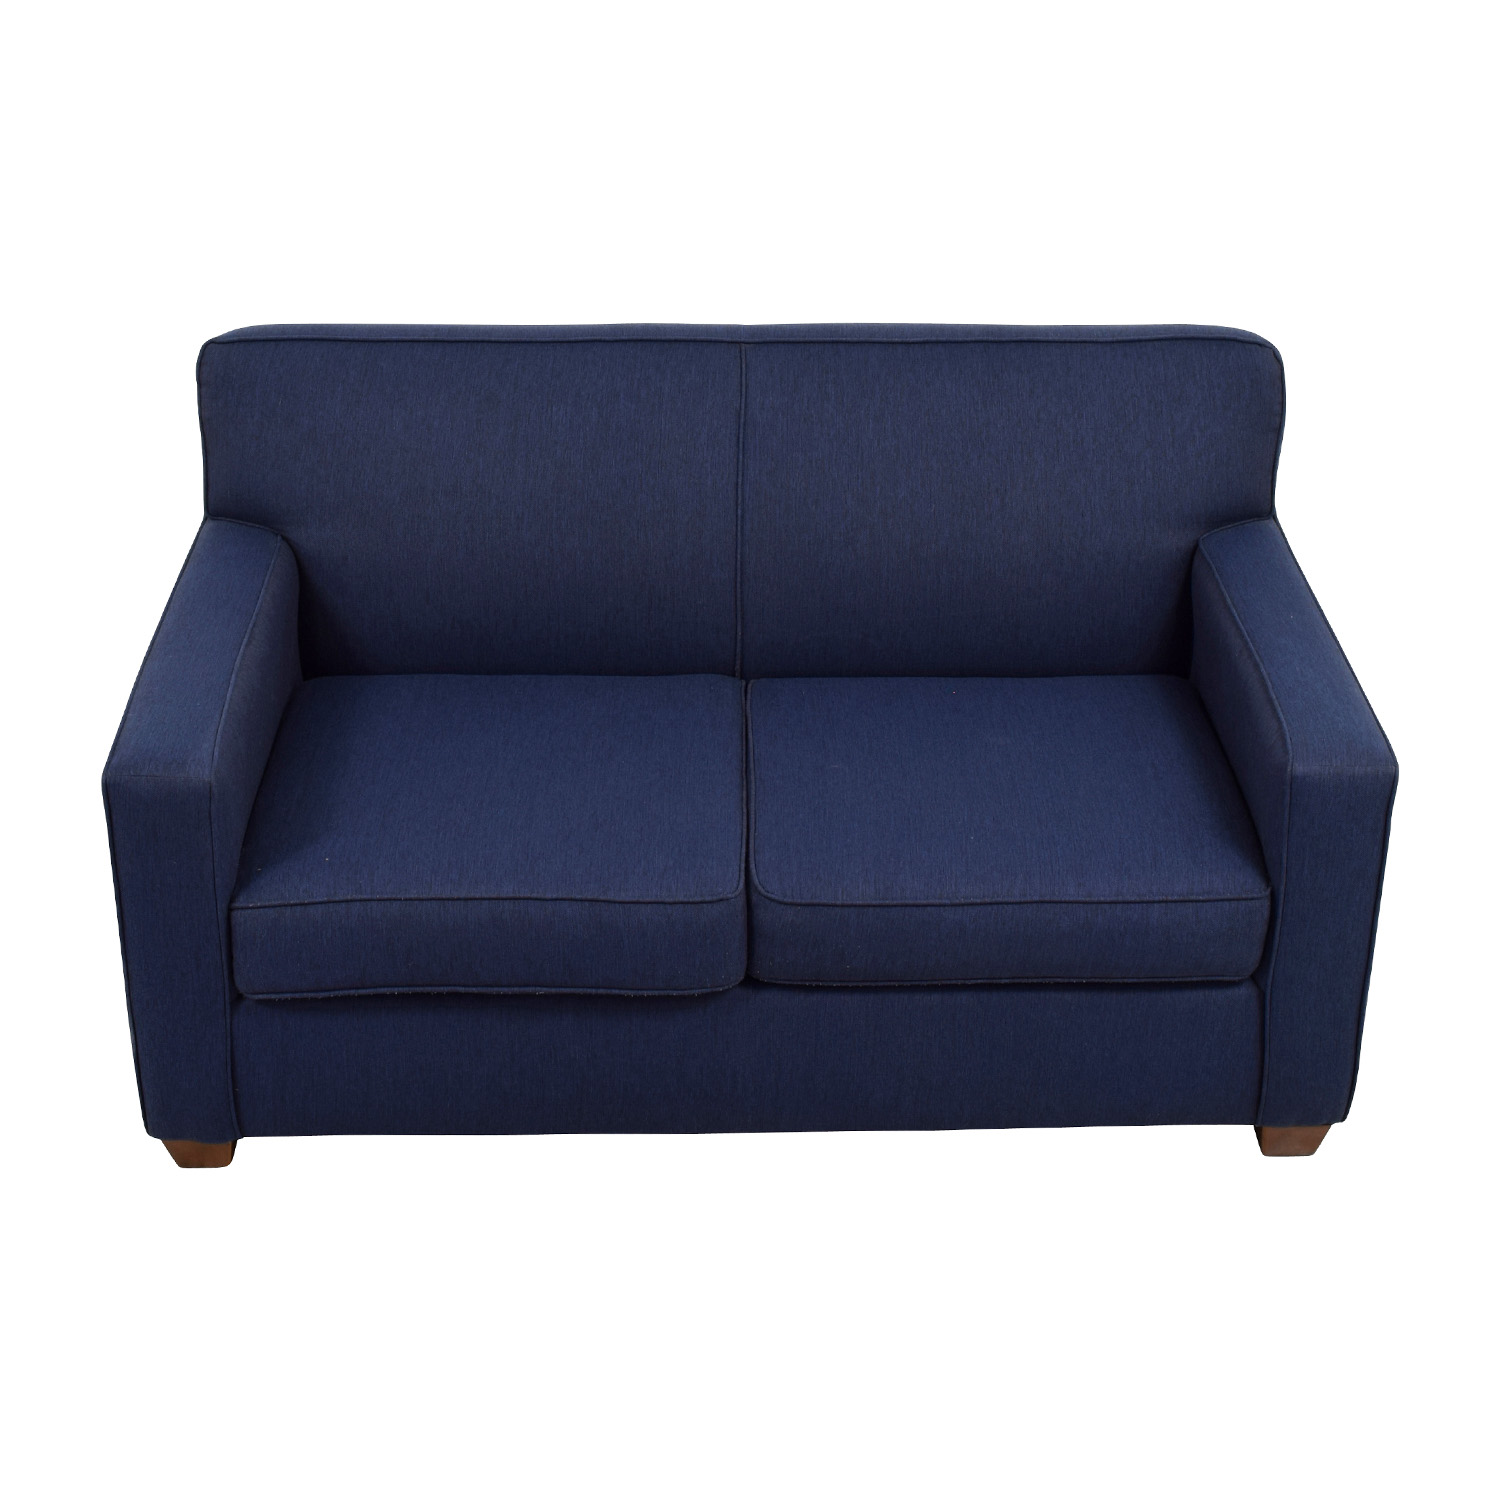 West Elm West Elm Blue Loveseat Loveseats